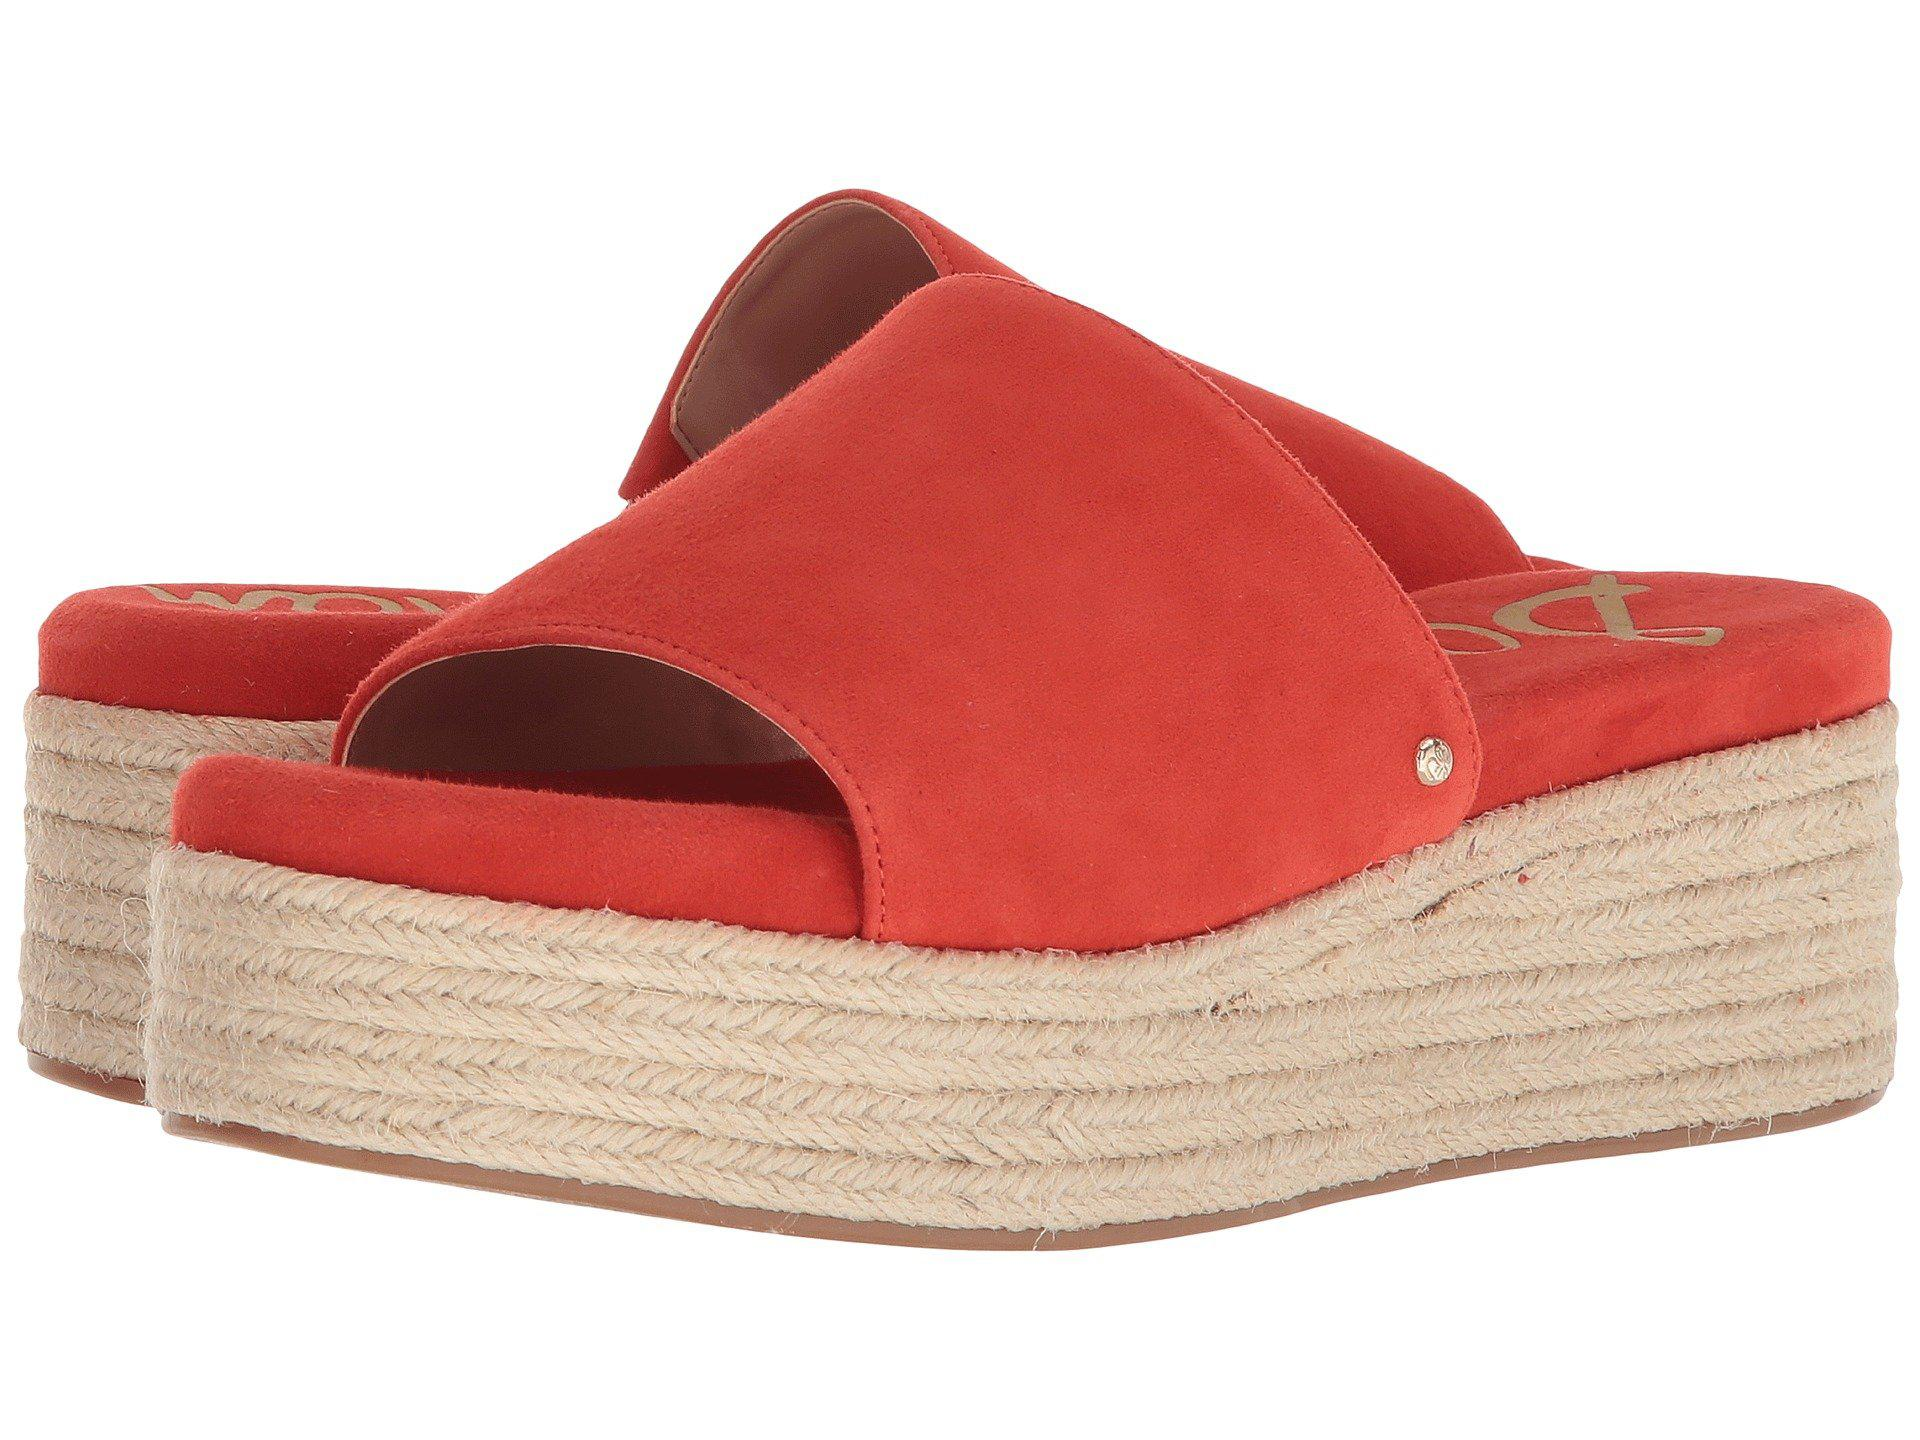 6660f56d10ff Lyst - Sam Edelman Weslee in Red - Save 35%